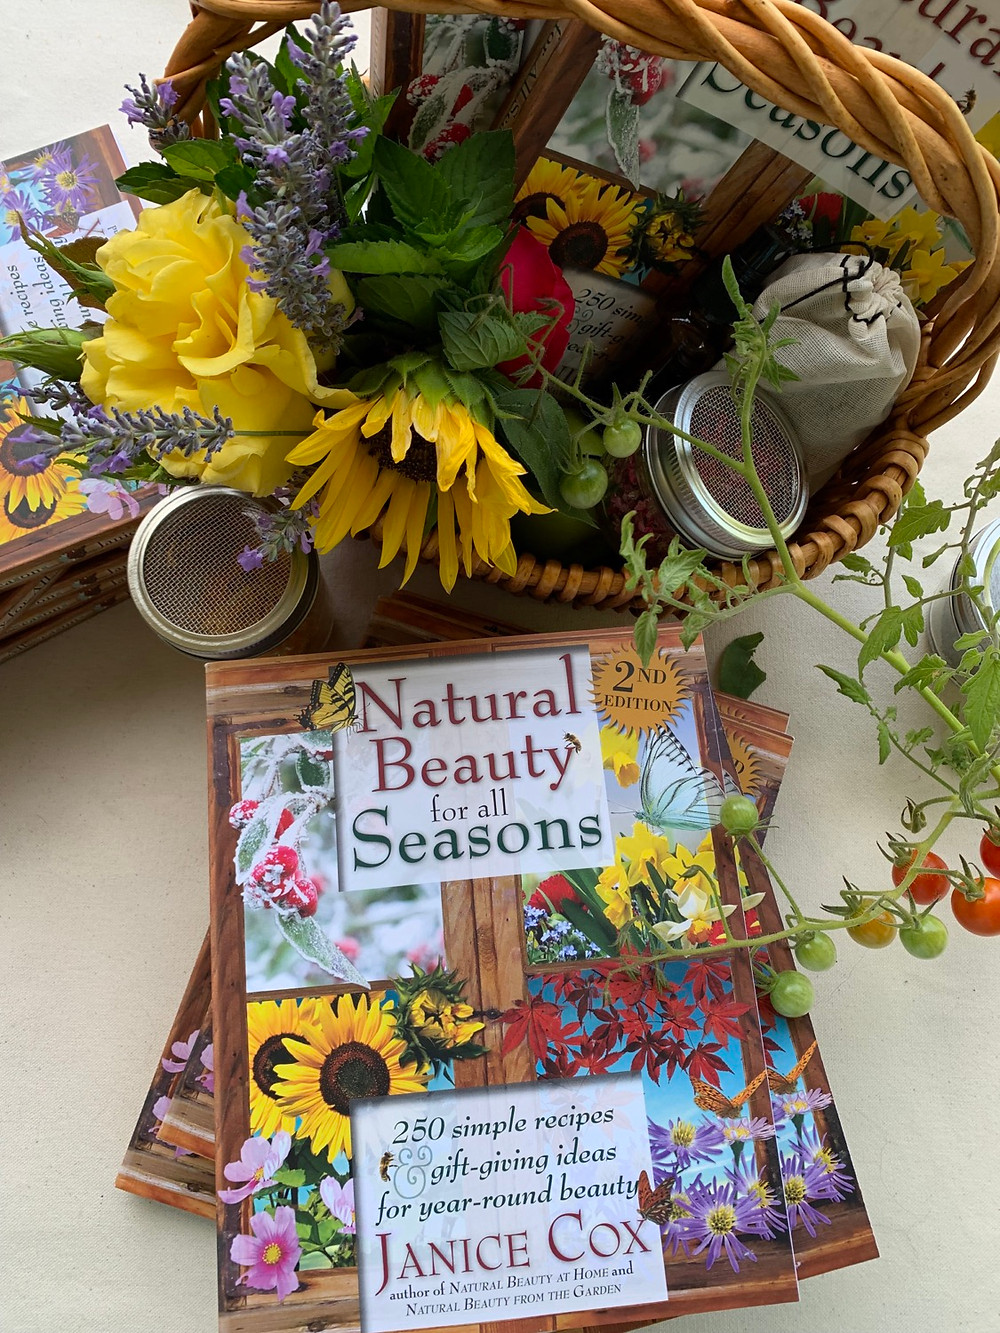 Natural Beauty for All Seasons Book basket